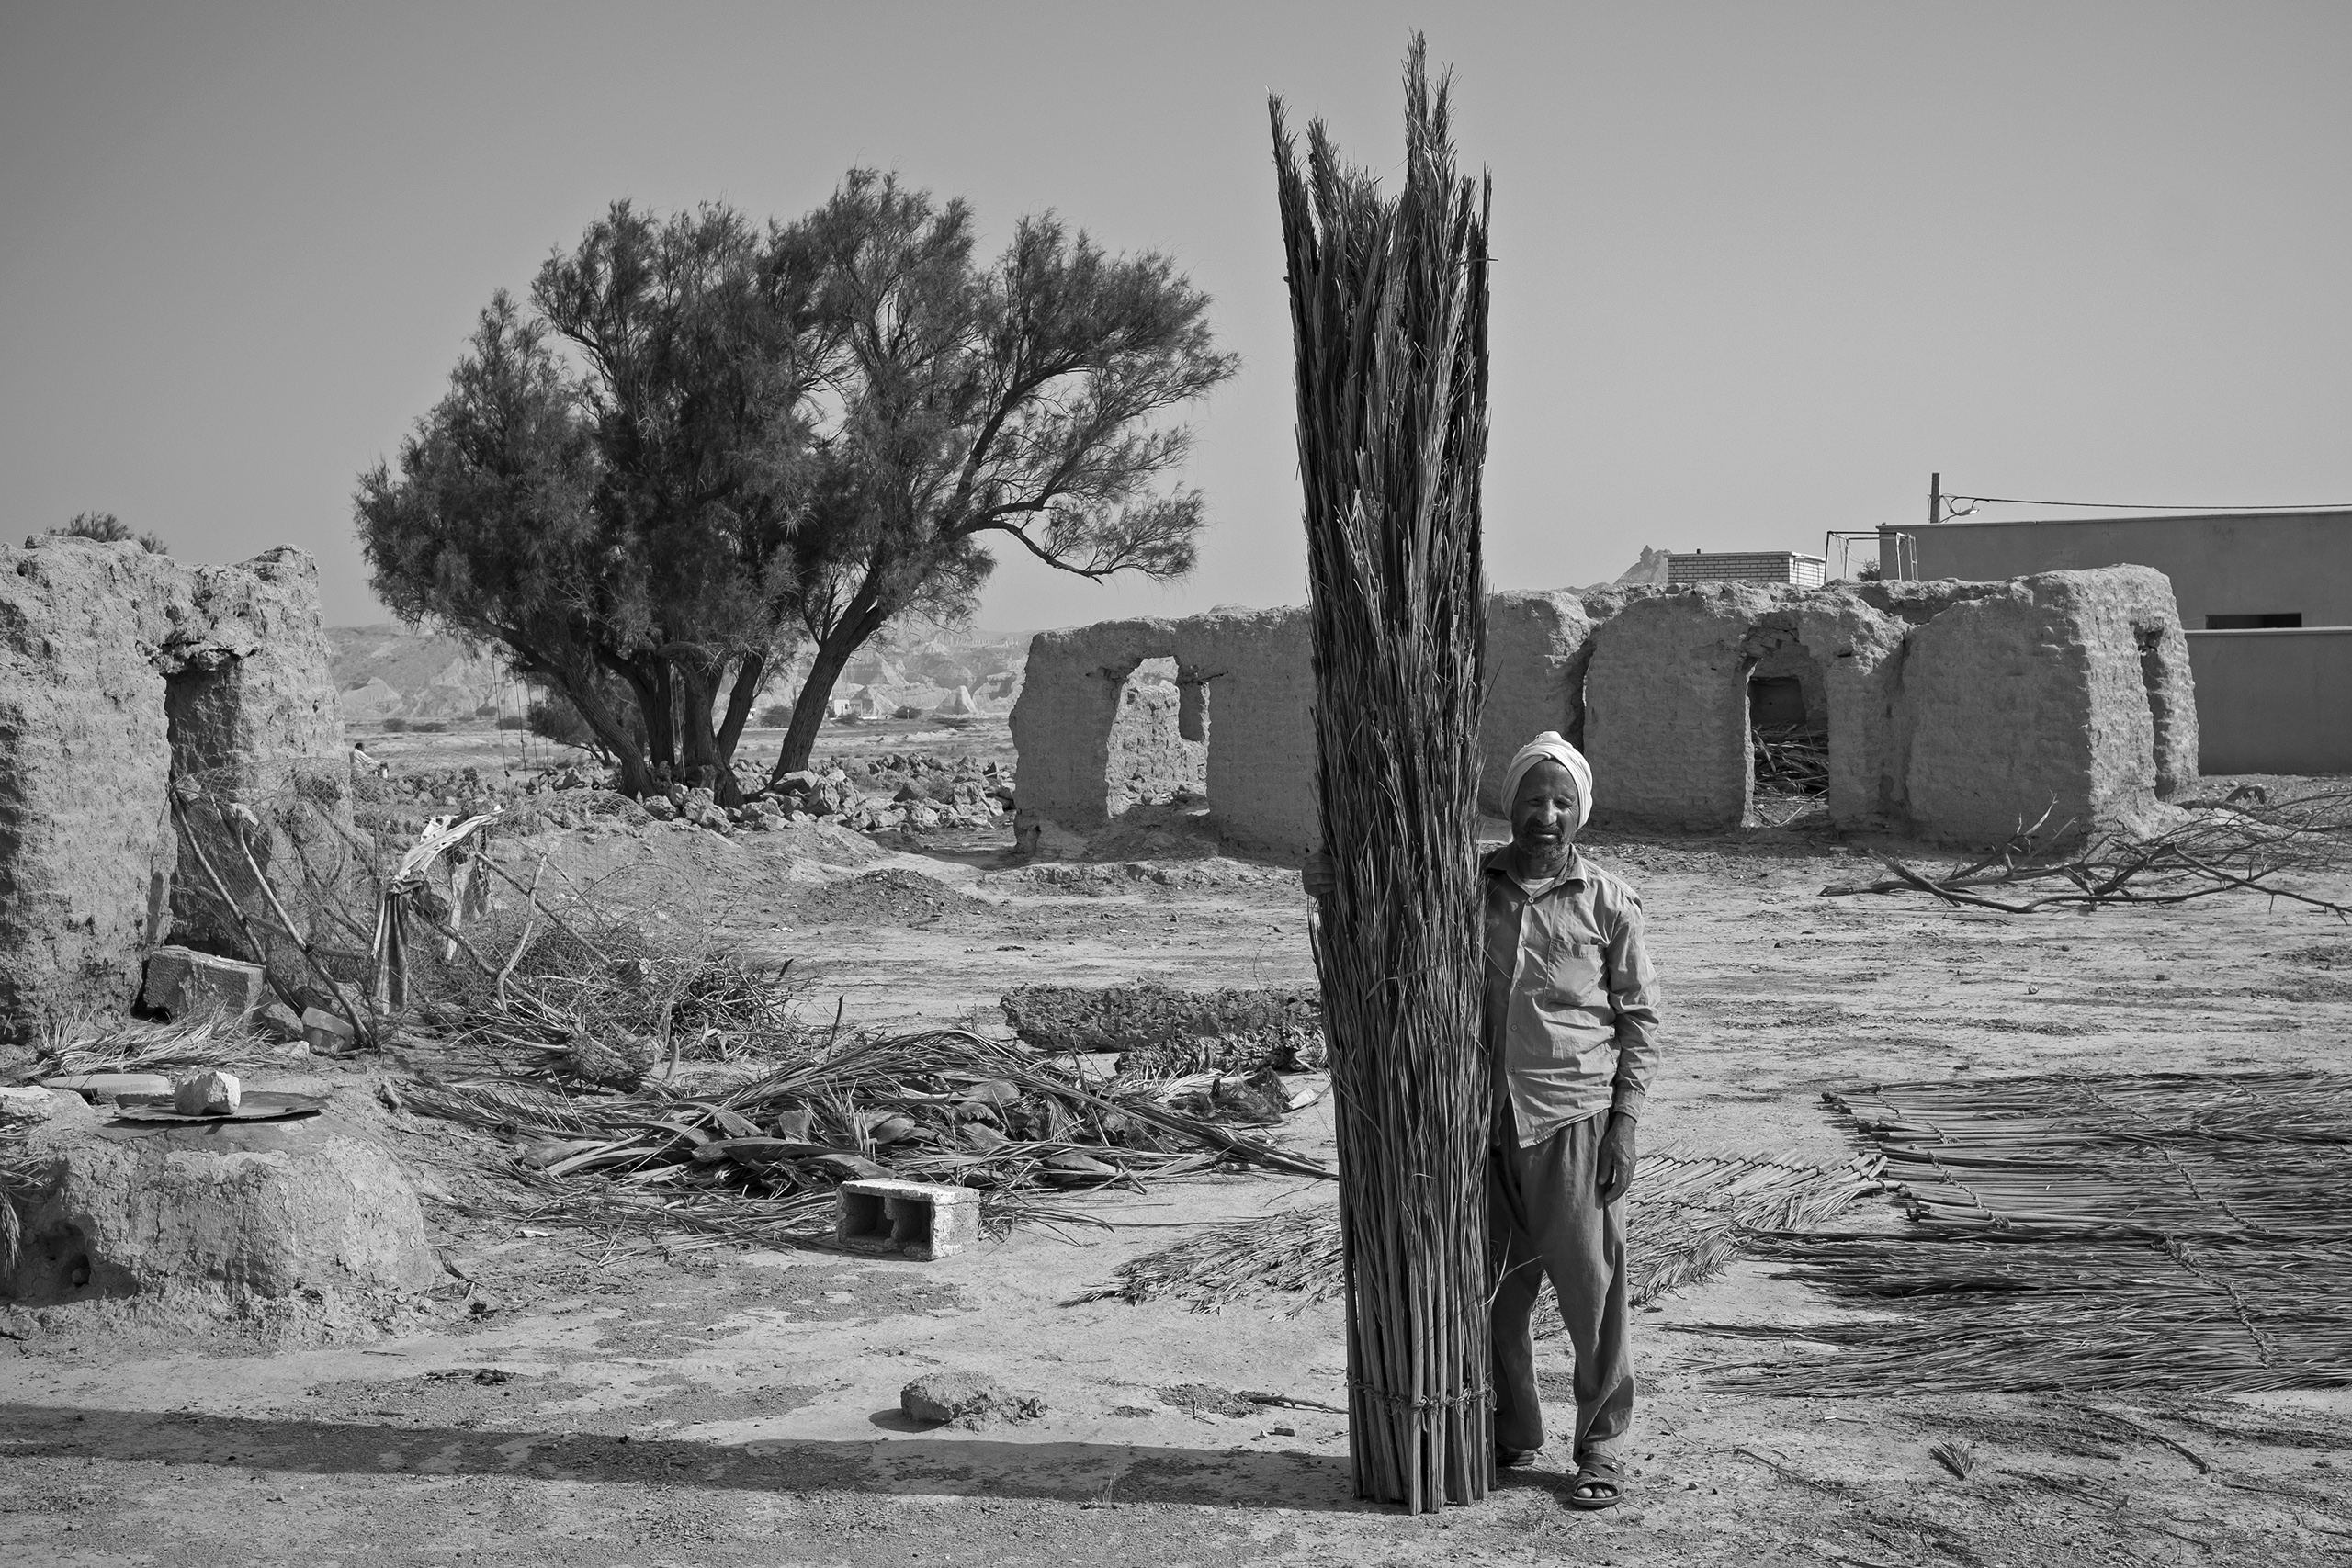 A straw weaver stands in his empty village in the coastal Persian Gulf,   we had underground fresh water 40 years ago both for drinking and agriculture, but have nothing now,  he said. Over recent years, temperatures have risen and there is a lack of fresh water, forcing many to leave their homes, May, 2016,